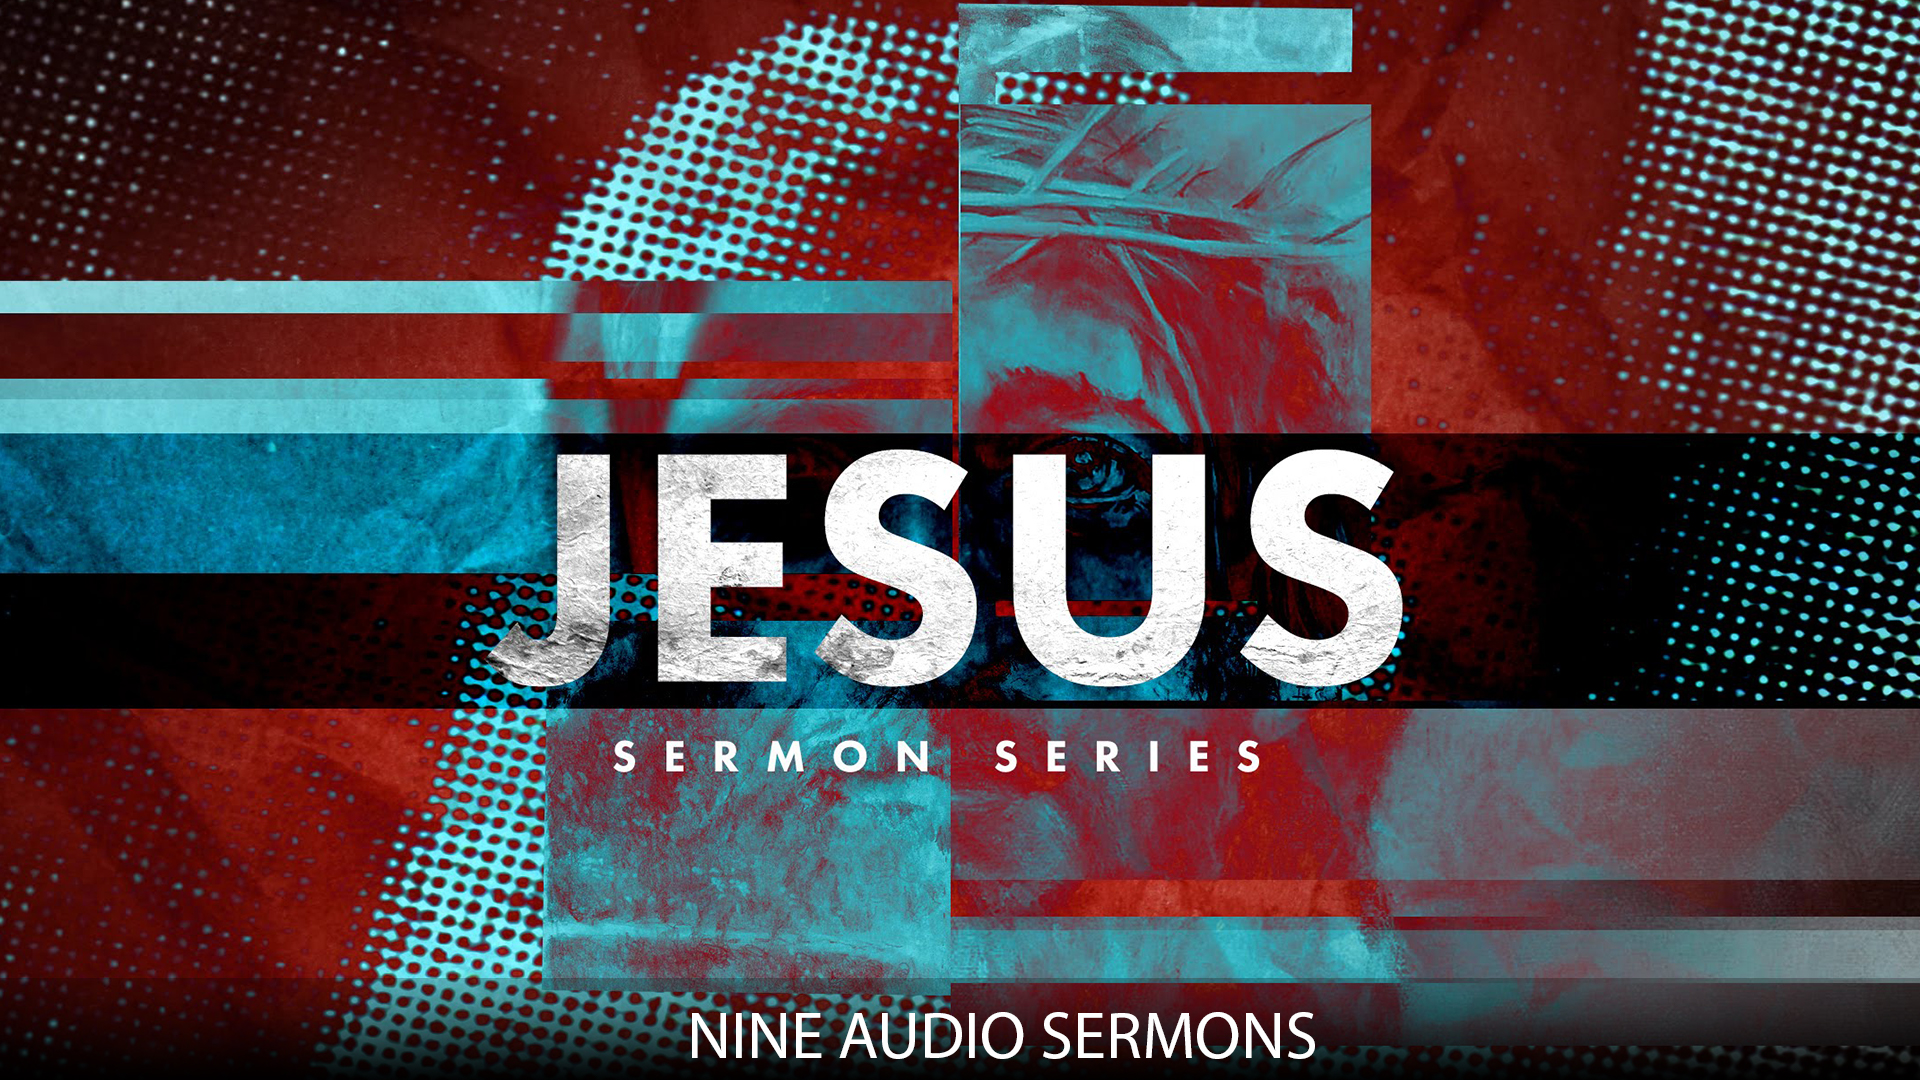 https://vladimirsavchuk.com/resources/jesus-audio-series/